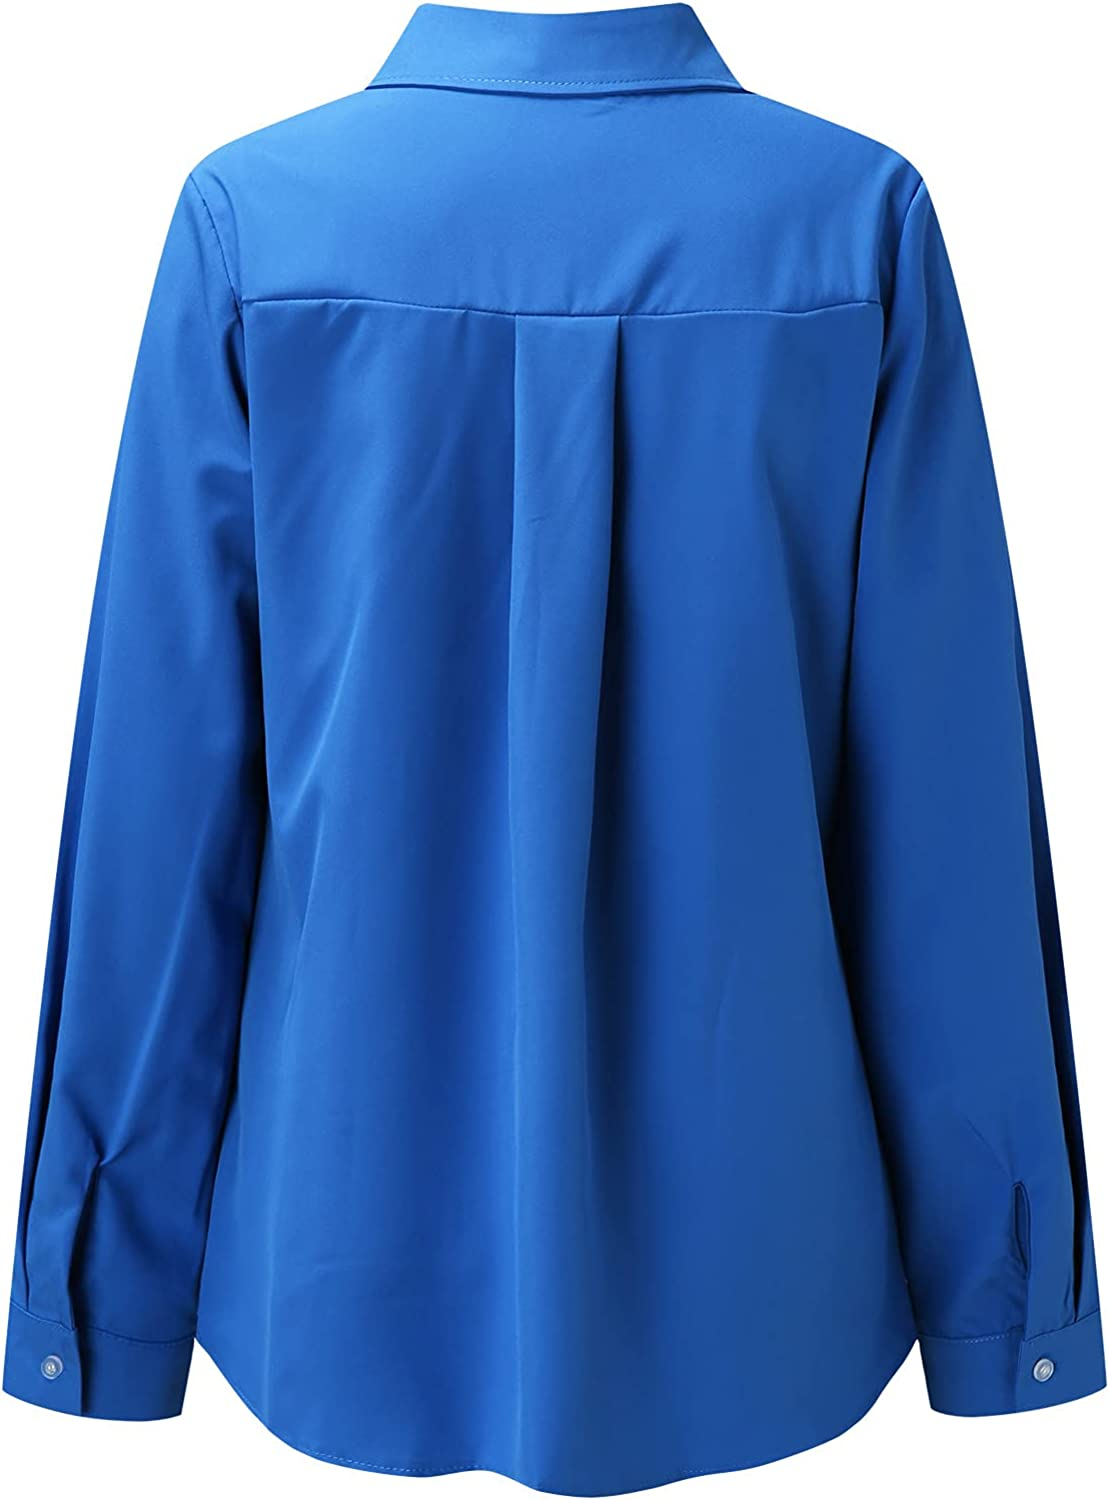 BEIBEIA Long Sleeve Tops for Women Winter,Long Sleeve Solid Color Button Turn-Down Collar Shirts Blouses Tops